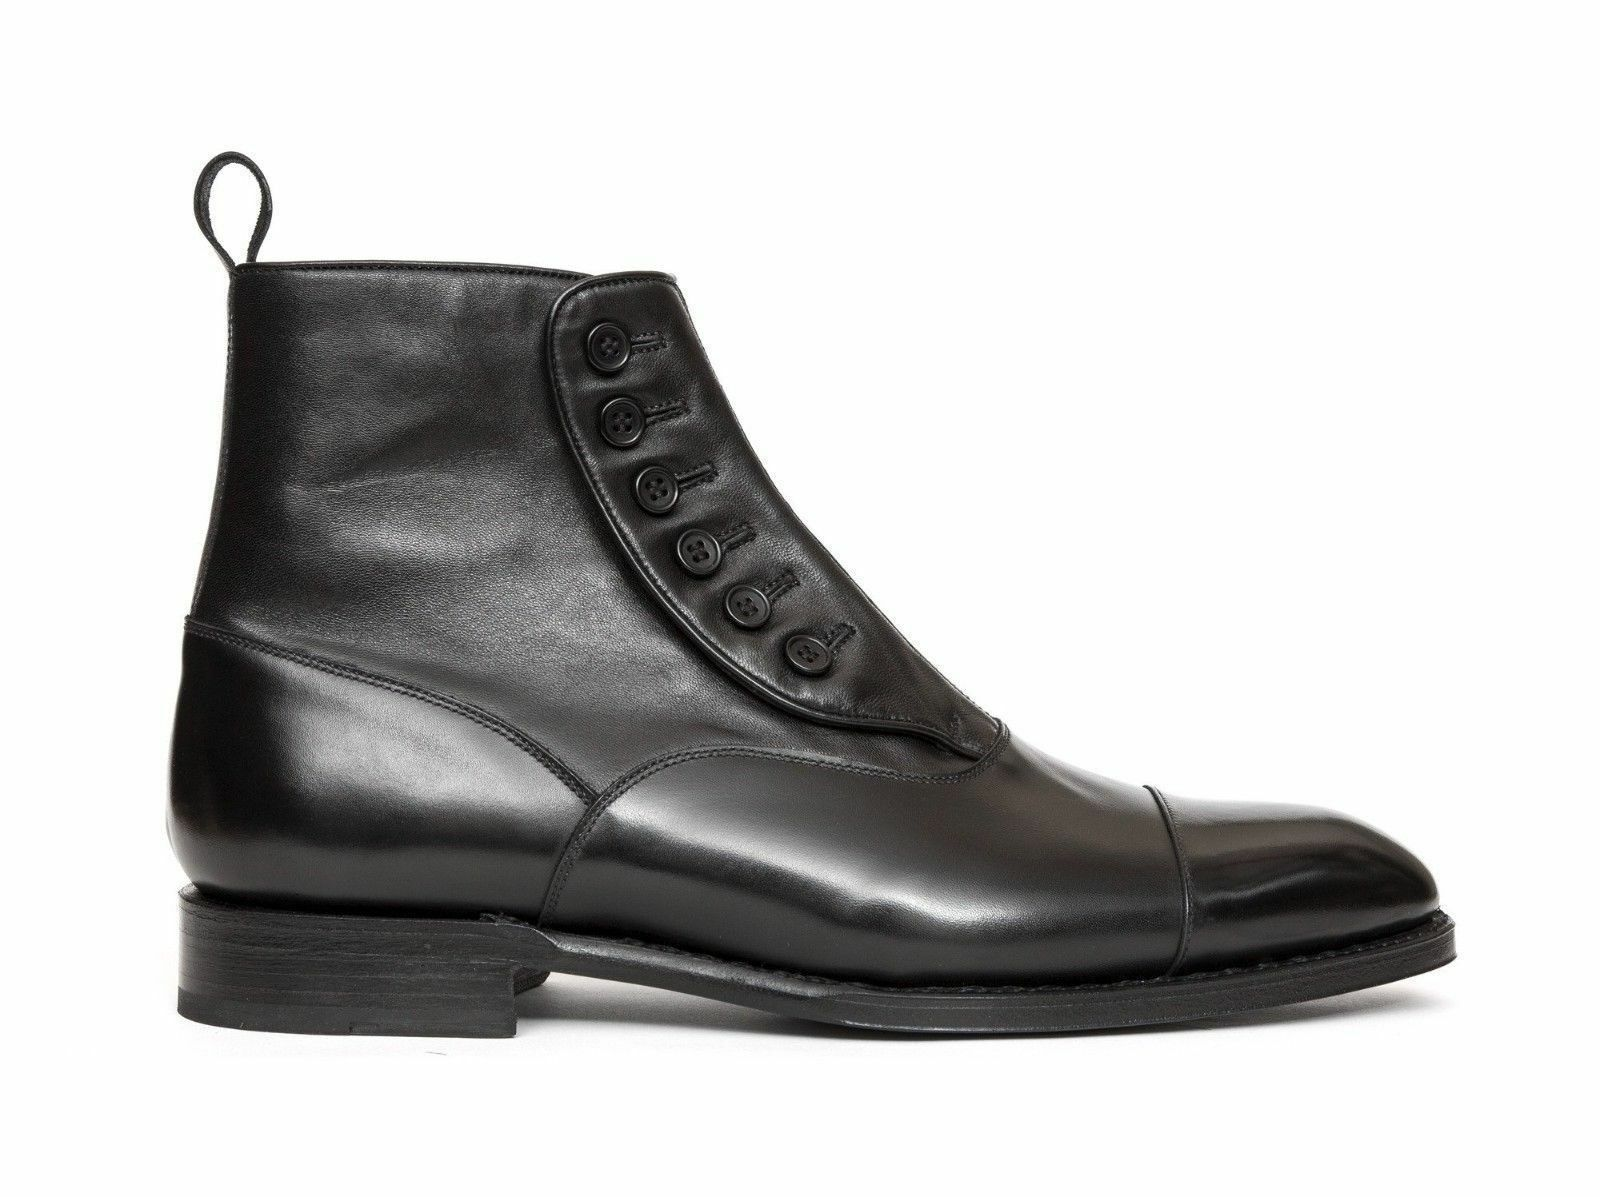 Handmade Men's Black Leather Two Tone High Ankle Leather Buttons Boots